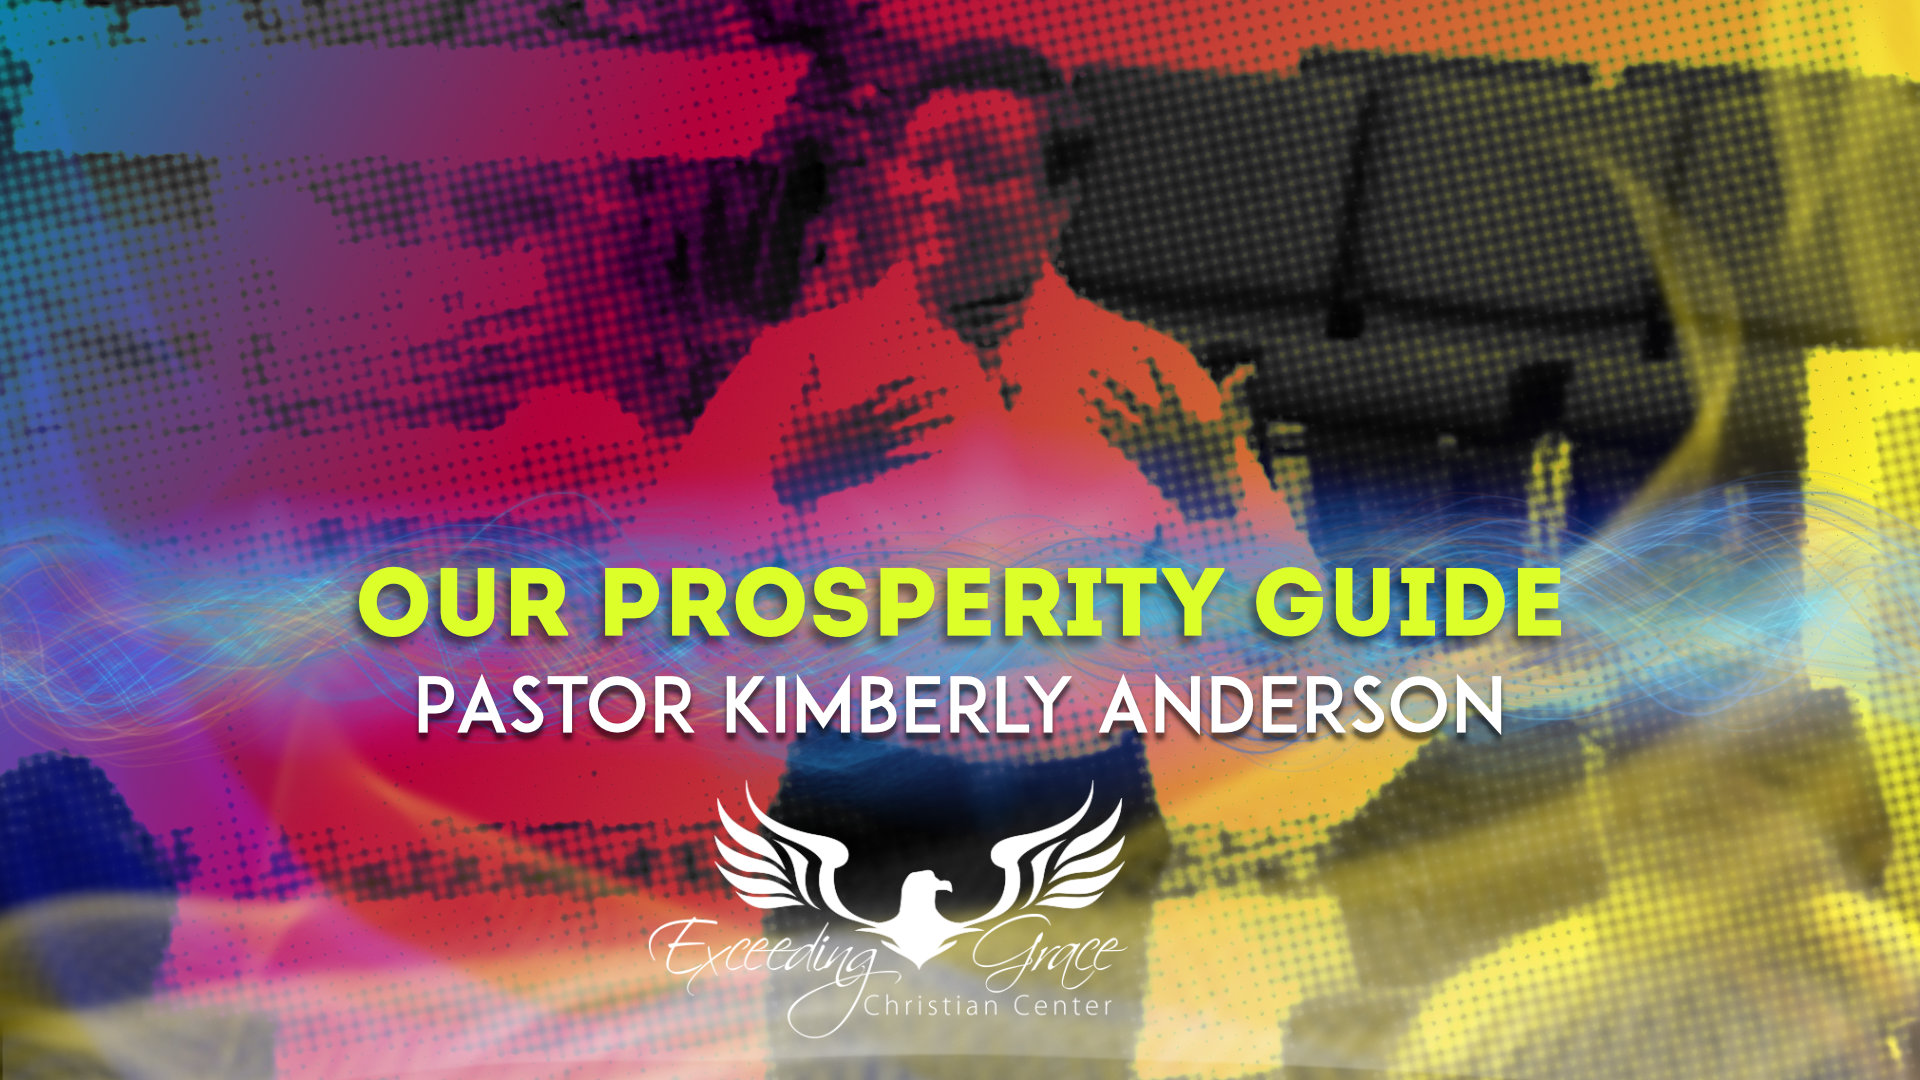 The Holy Spirit Our Prosperity Guide